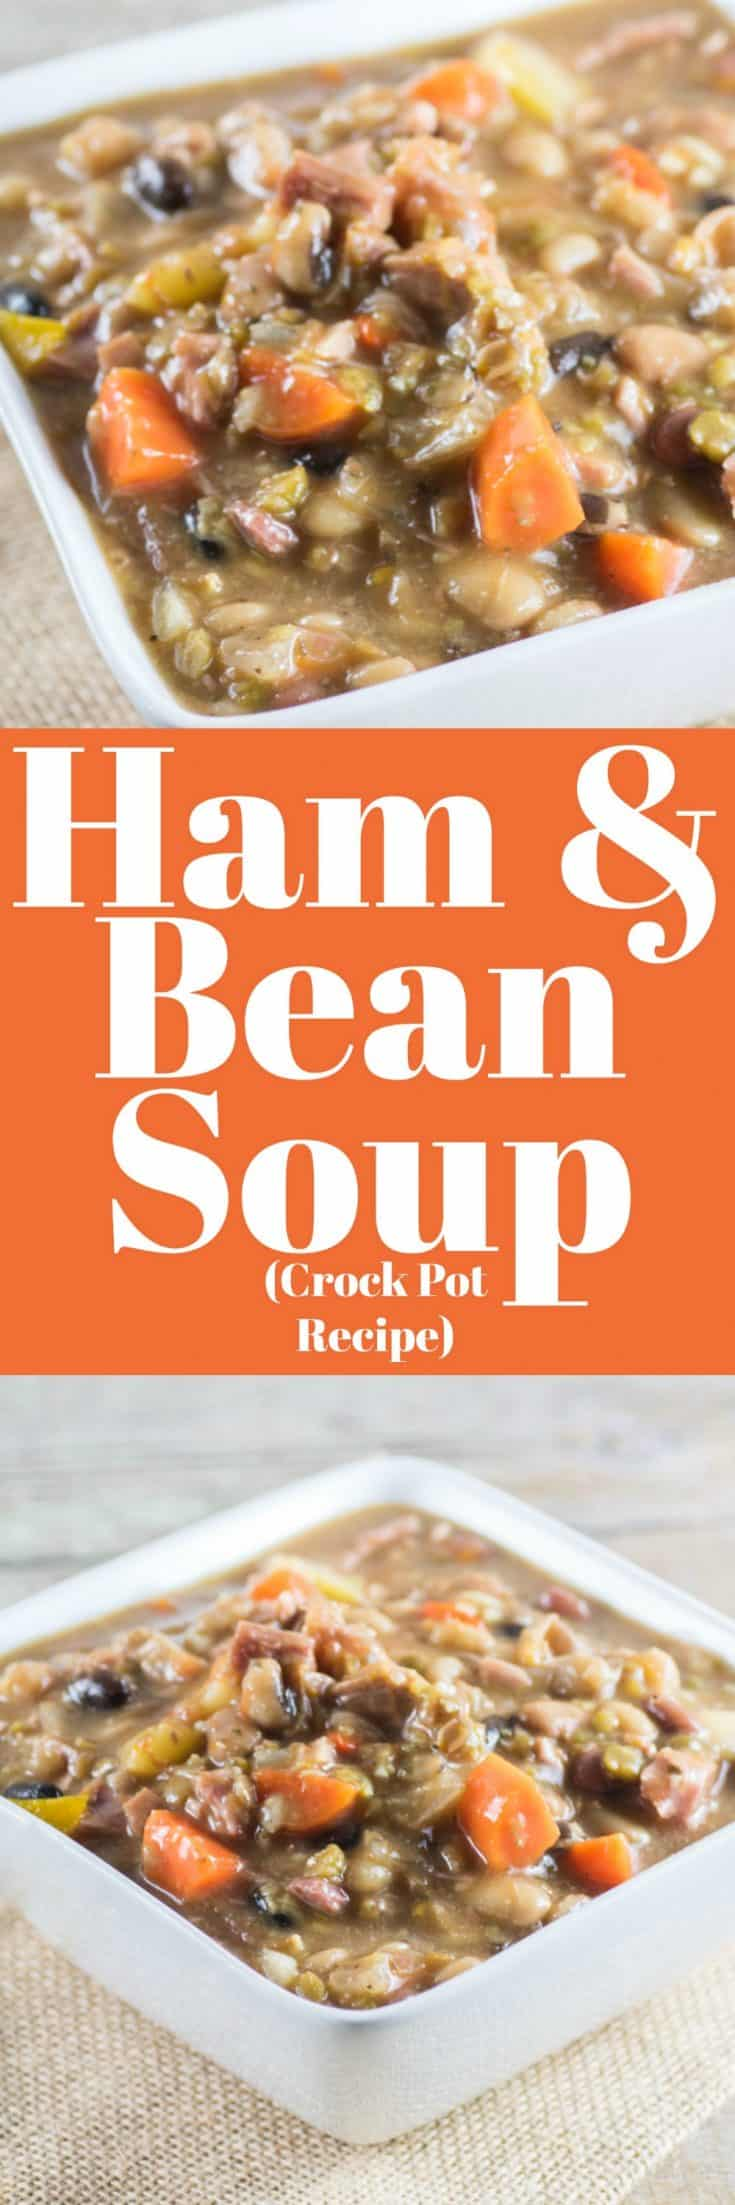 Ham and Bean Soup (Crock Pot Recipe) is great made from a leftover ham bone. It is pure comfort food on a cold winter's day. #hamandbeansoup #soup #hambone #leftovers #crockpot